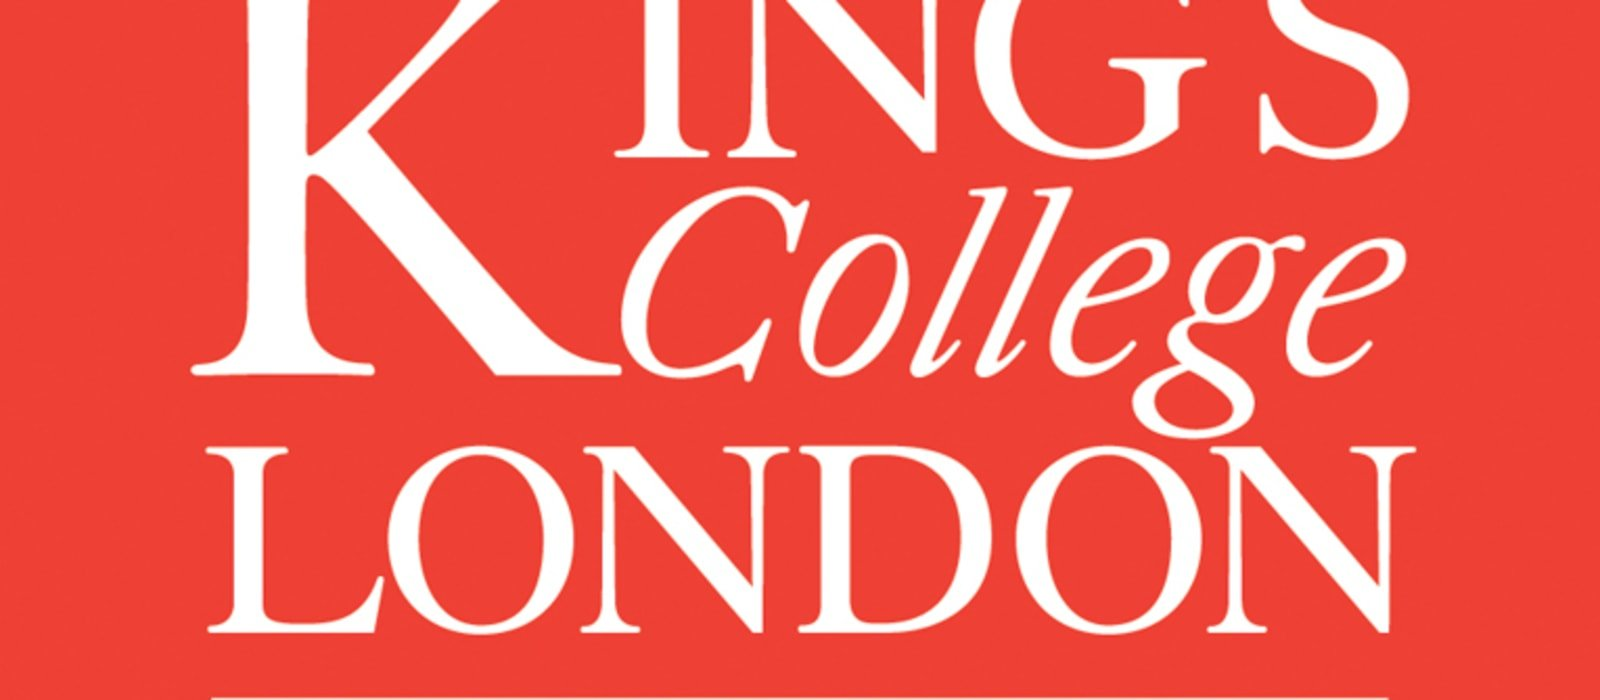 The Survivors Trust is Collaborating with King's College London on a National Survey